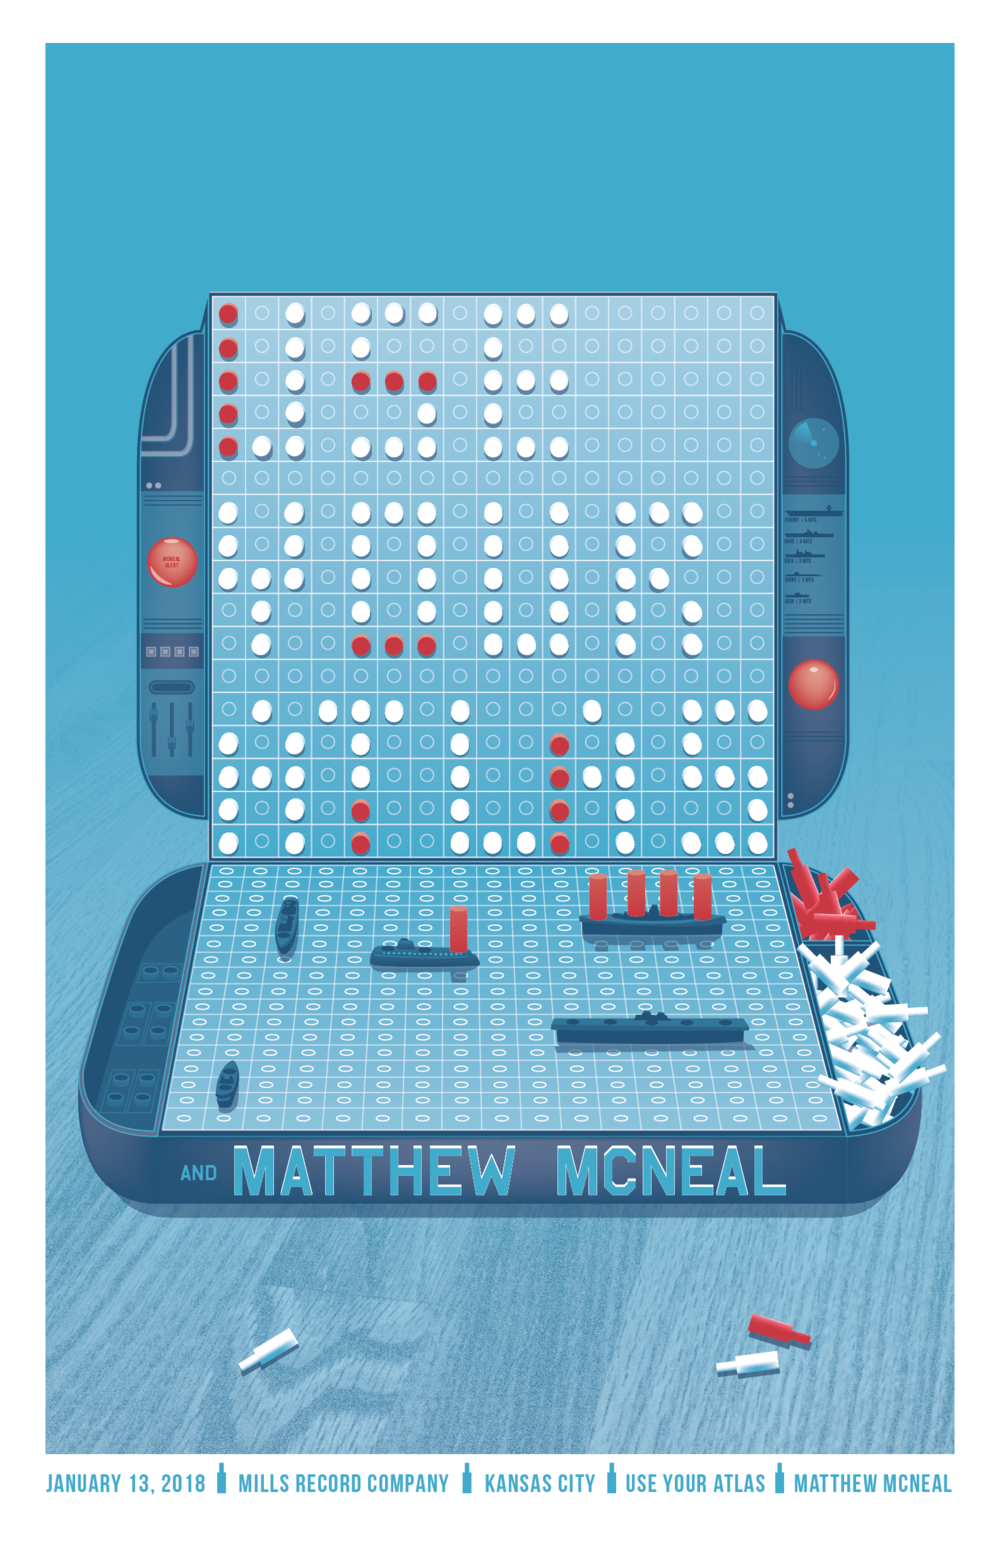 use-your-atlas-matthew-mcneal-gig-poster-kyle-dolan-graphic-design-illustration.png